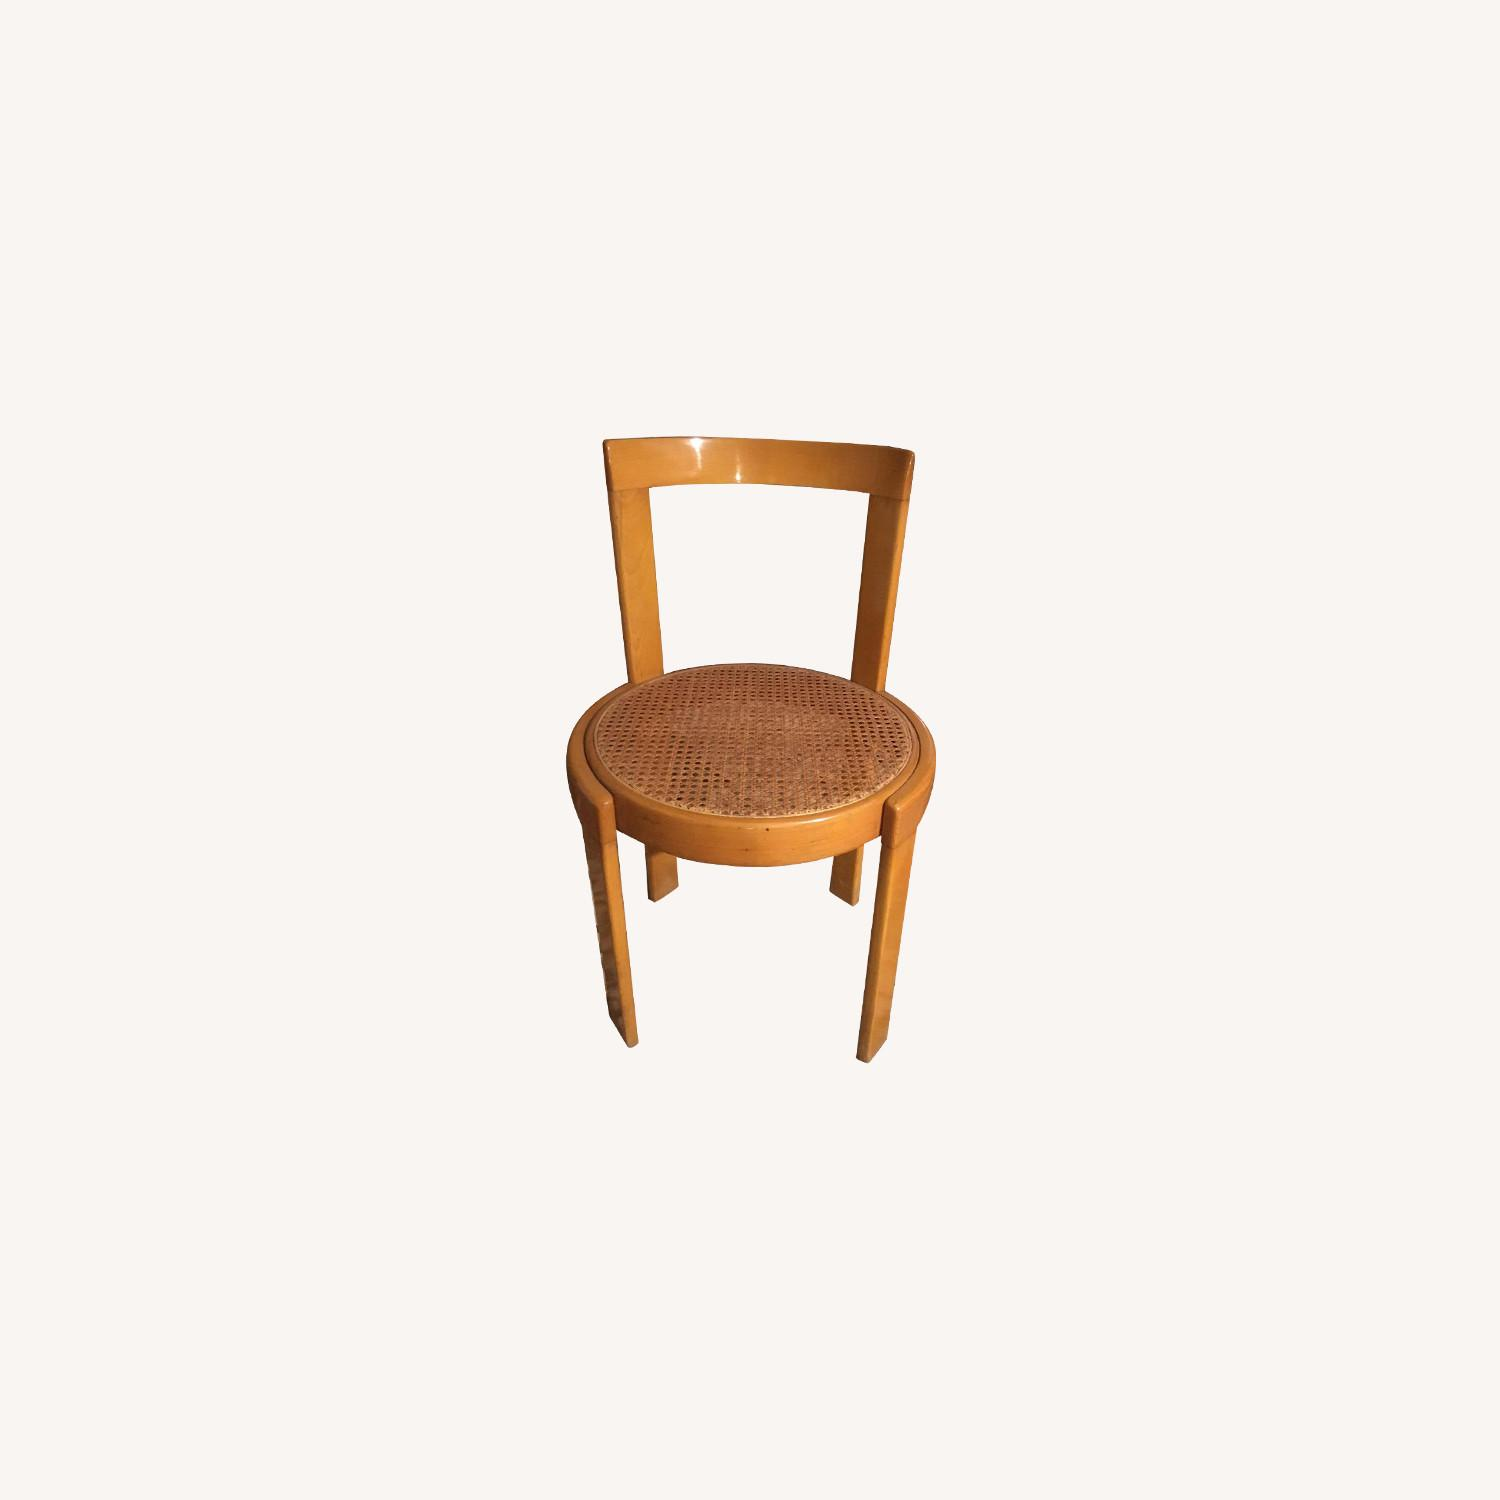 Thonet Italian Yellow Bent Wood Cane Seat Dining Chairs - image-0